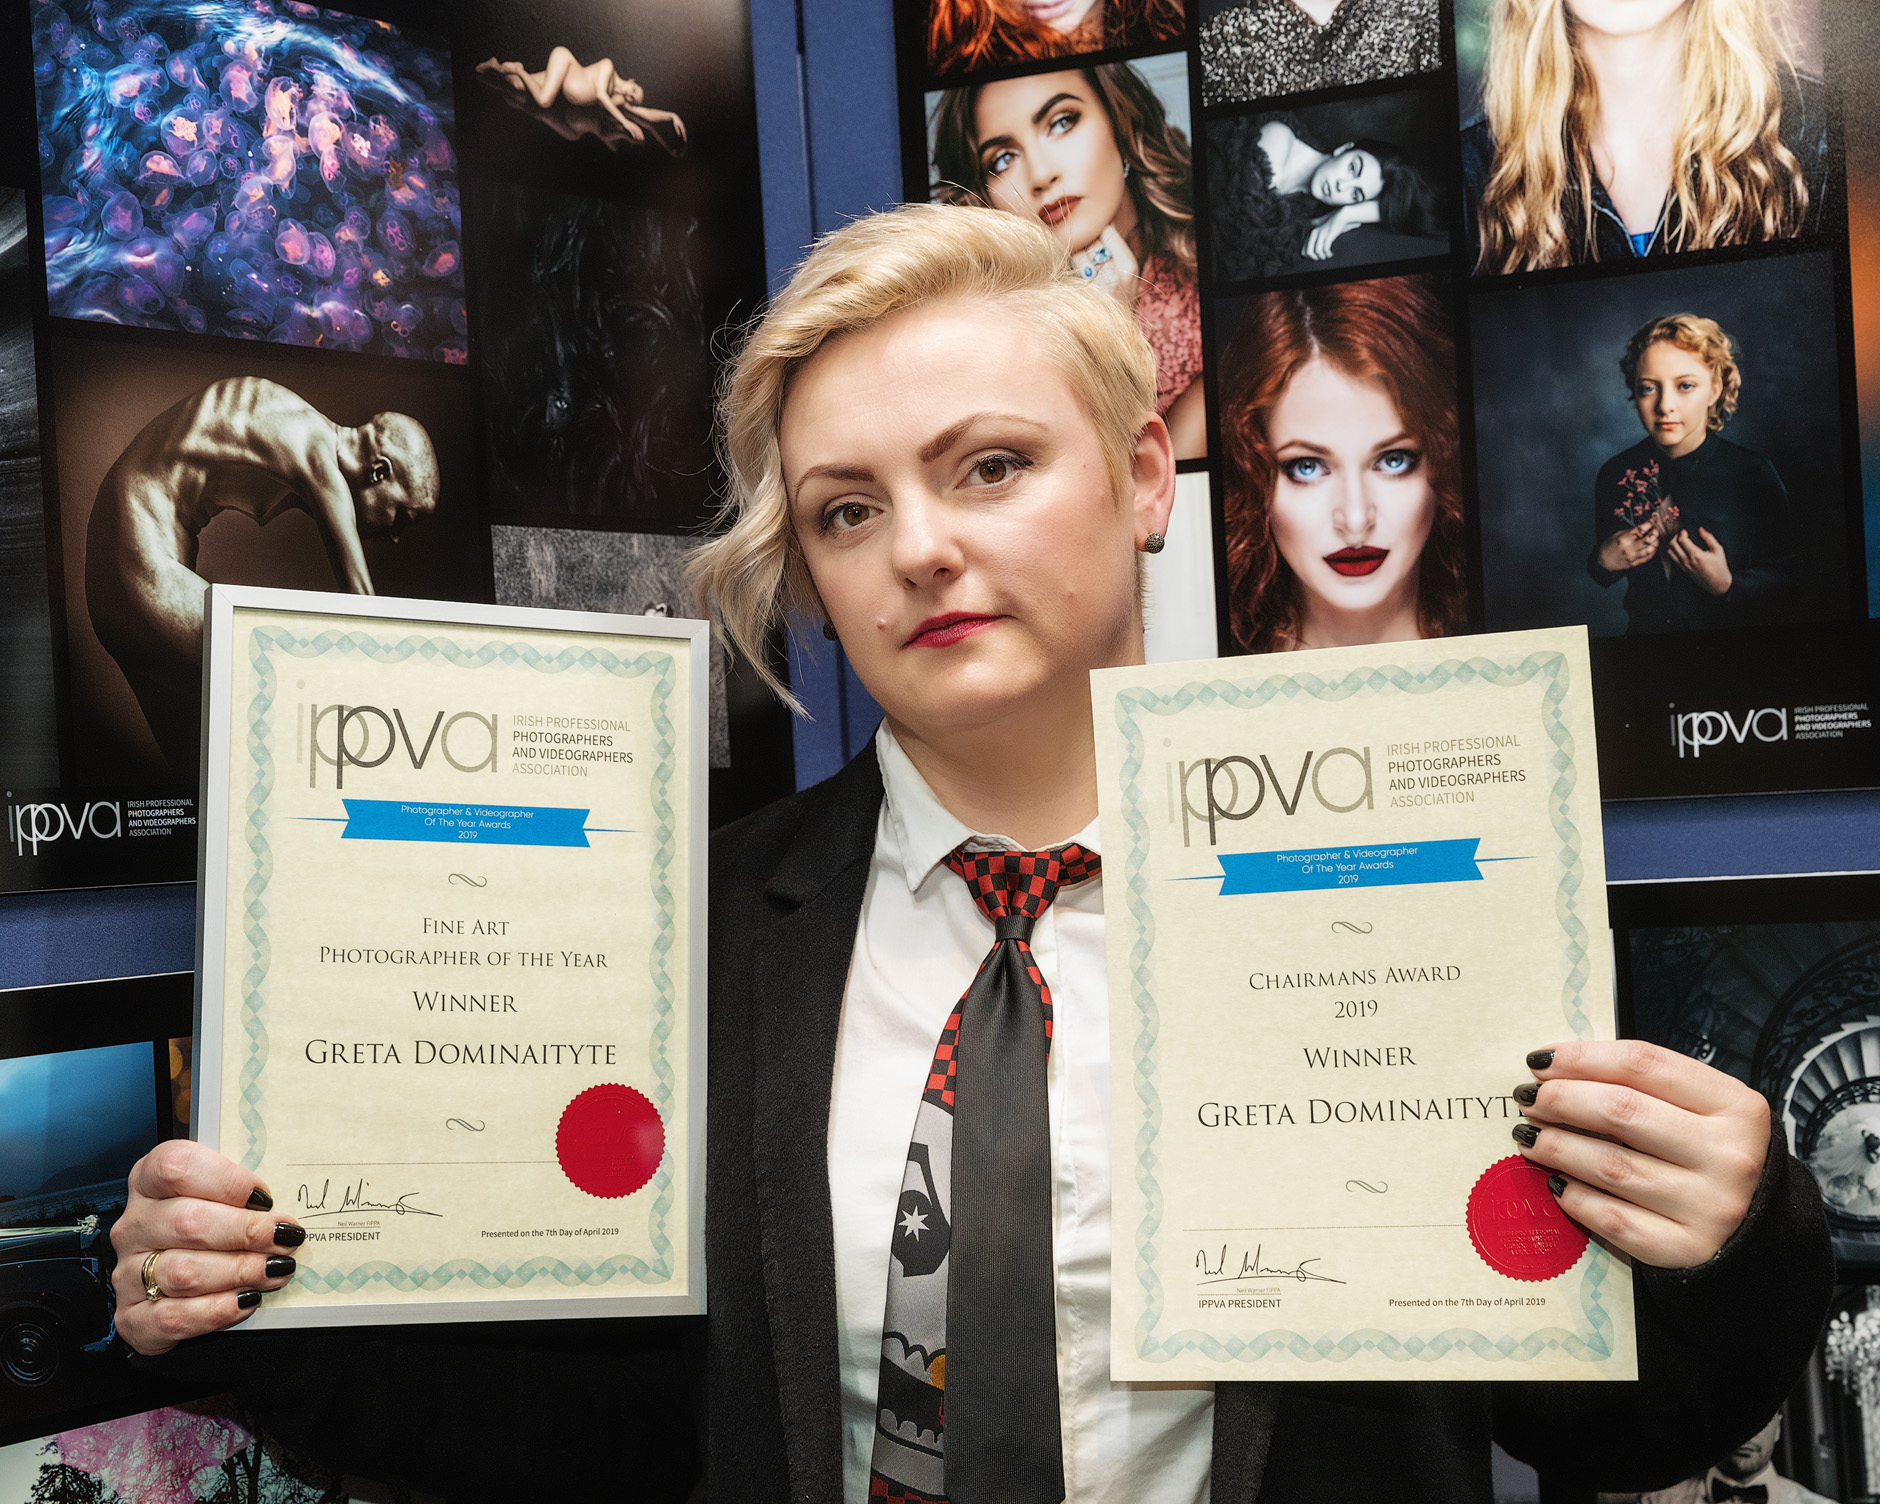 Greta holding her two certificates for Fine Art Photographer of the Year and Chairman's Award